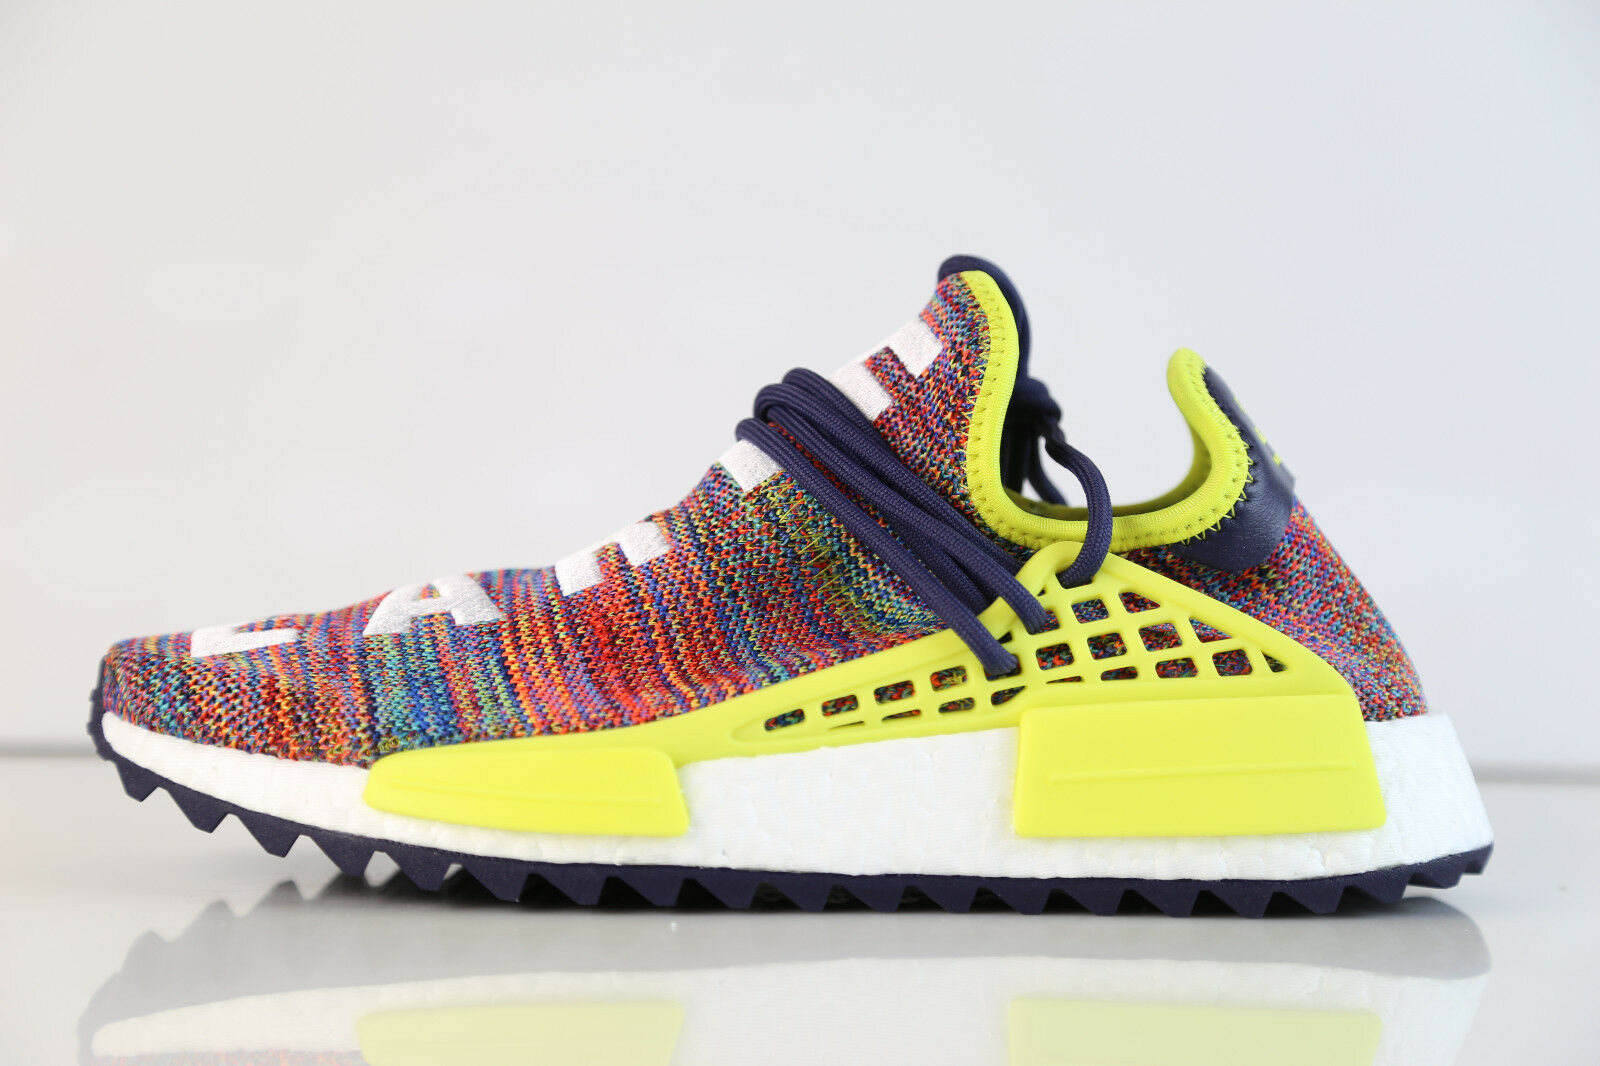 Adidas Pharrell Williams Human Race NMD TR Trail Multicolor AC7360 5-12 multi pw